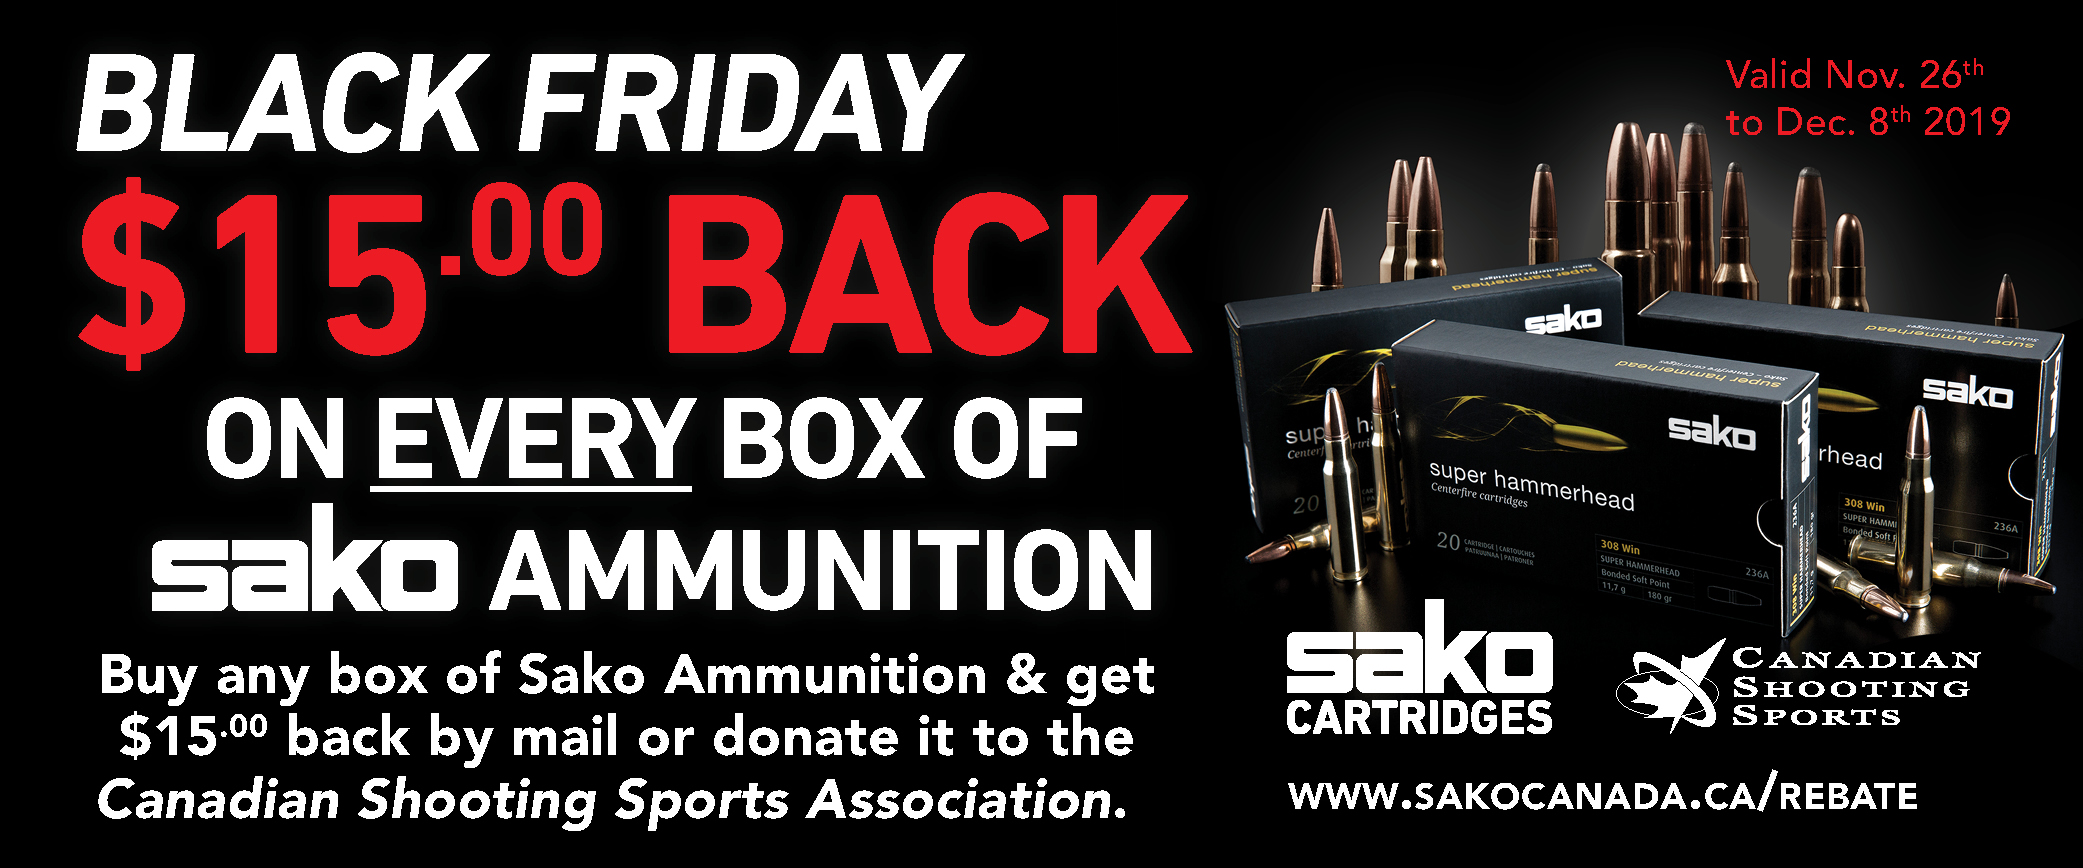 Sako Ammo Black Friday Promotion 2019 $15